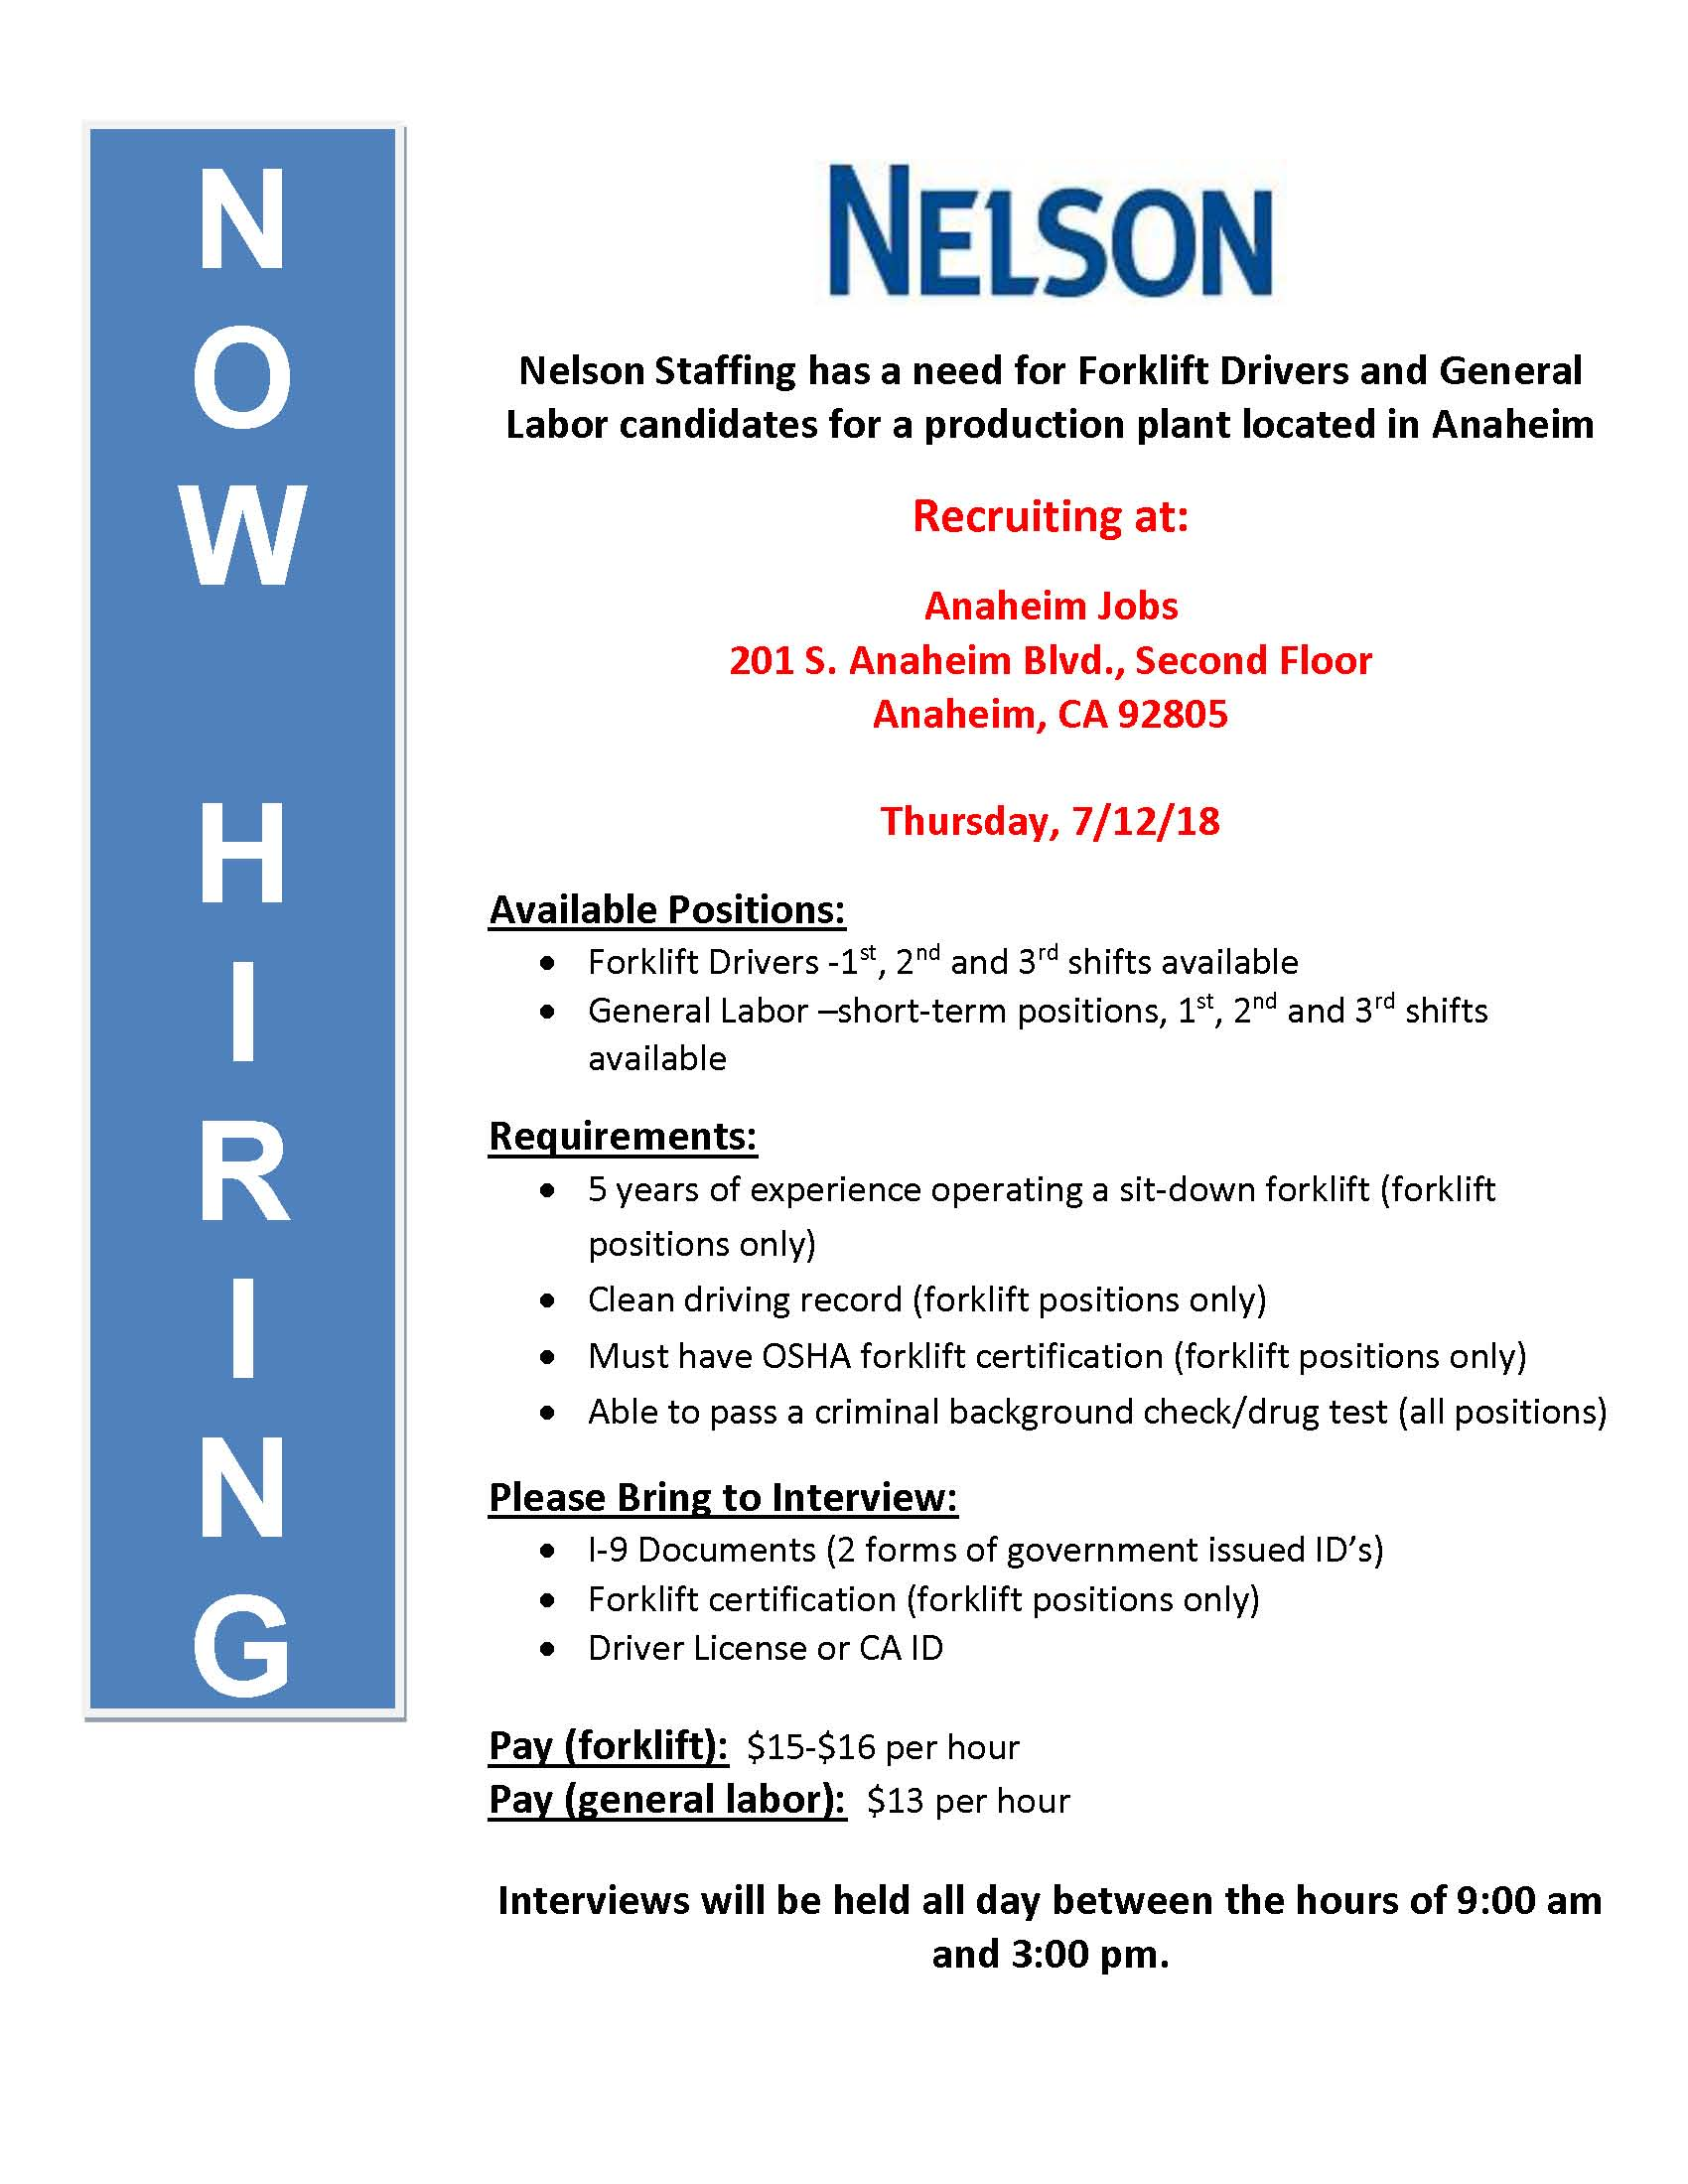 Nelson Recruiting Event Flyer 7-12-18